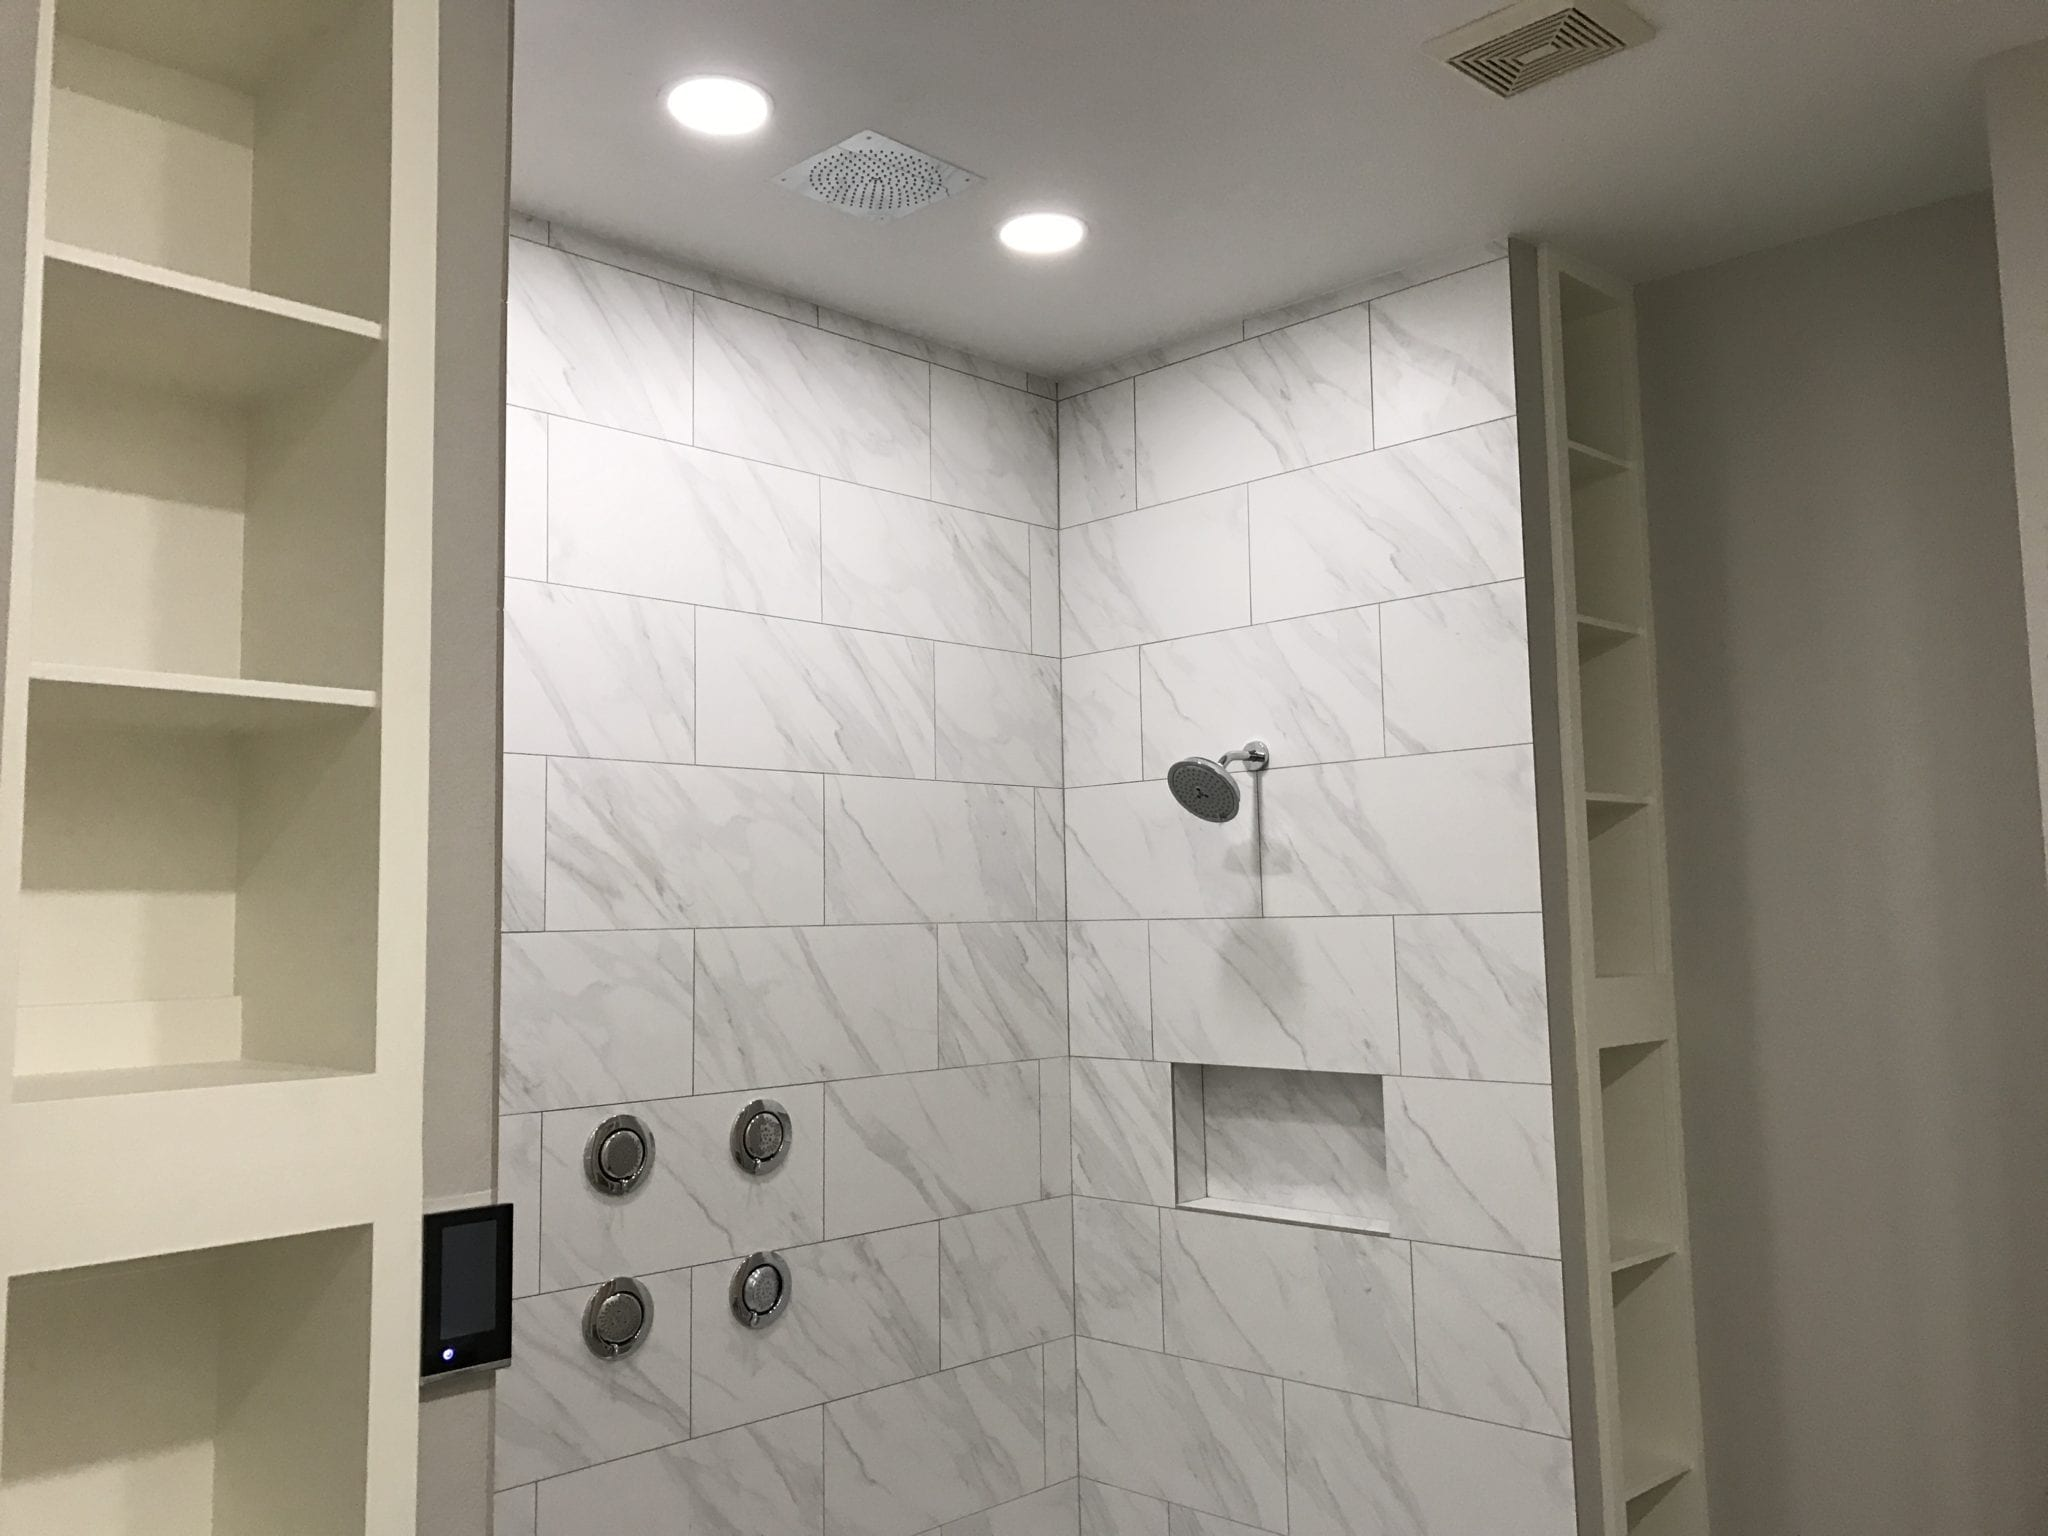 dallas bathroom remodel bathroom remodeling dallas, tx tristar